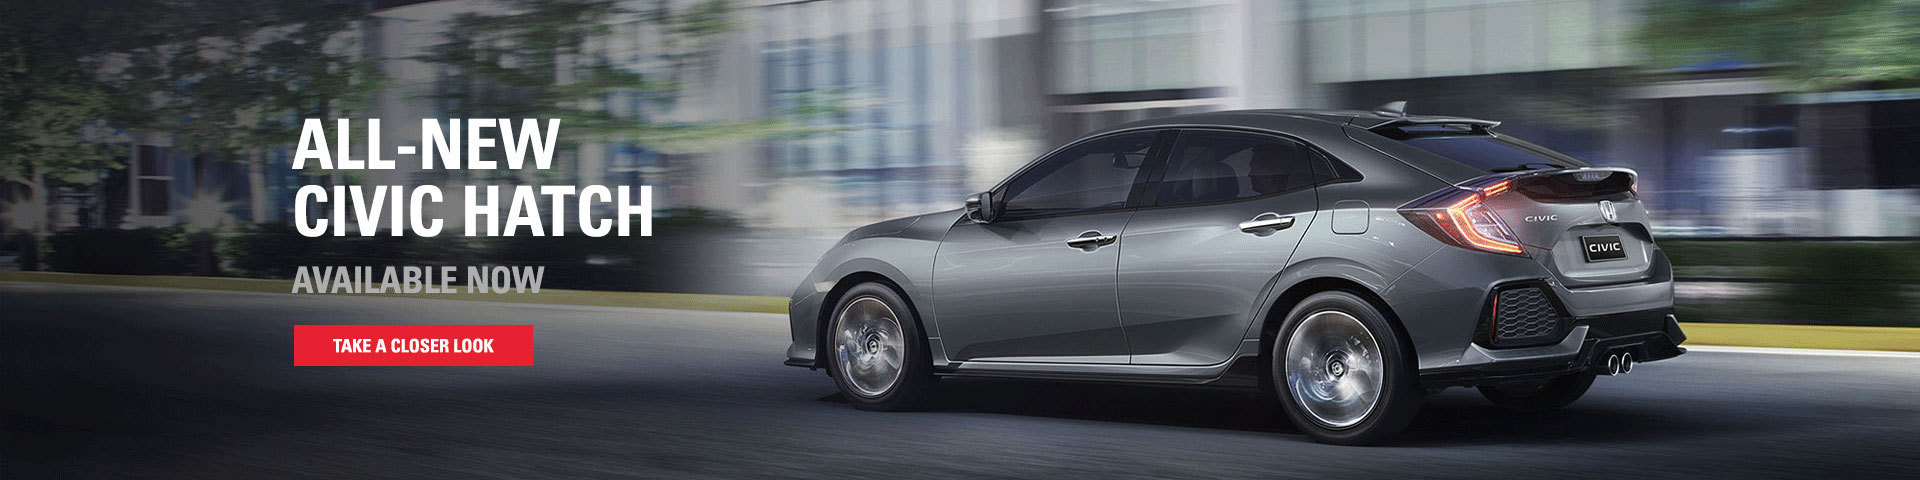 ALL-NEW CIVIC HATCH